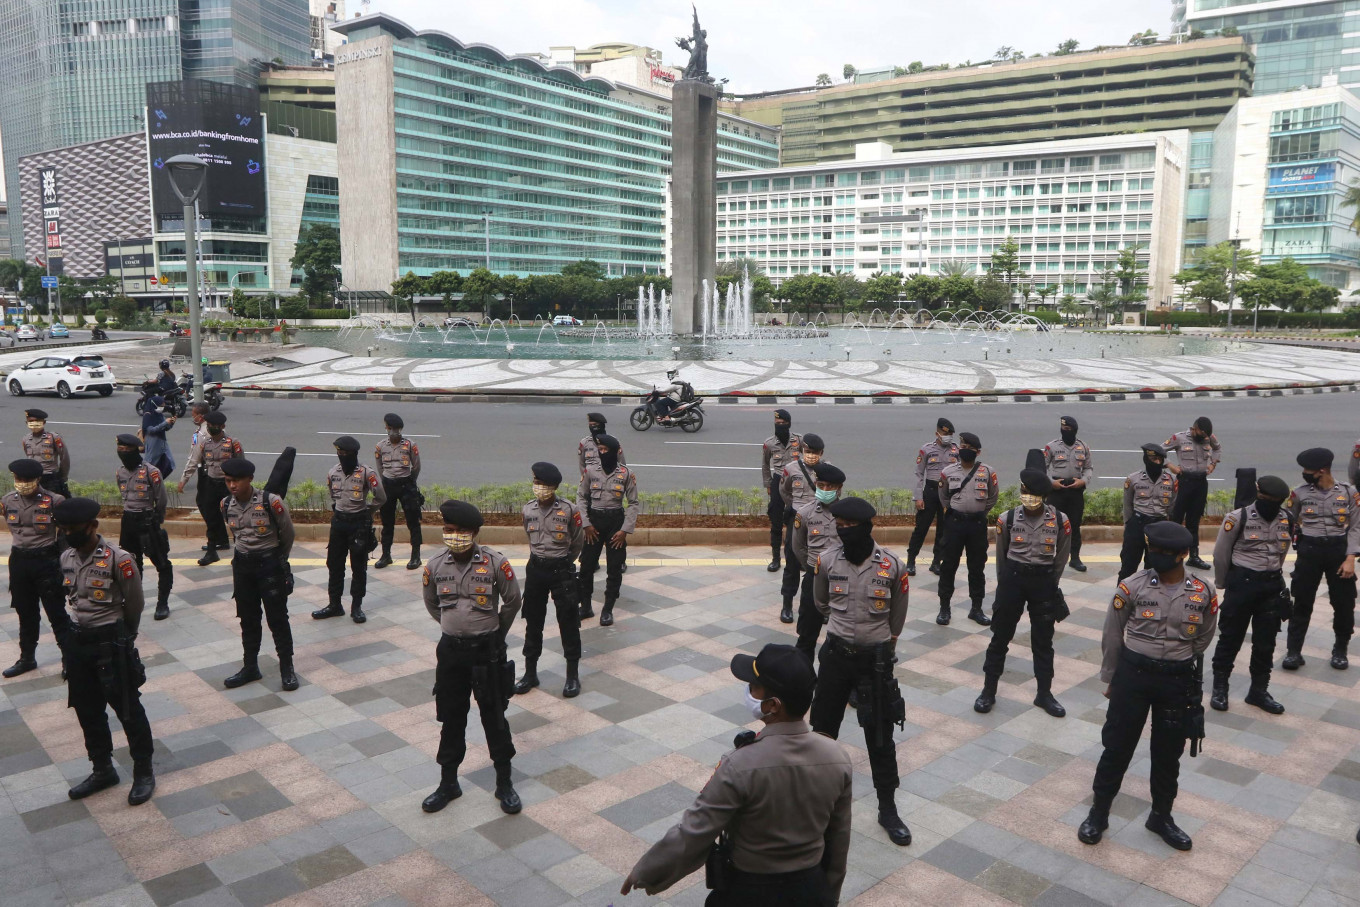 COVID-19: Nearly 78,000 police to guard transition to Indonesia's 'new normal'